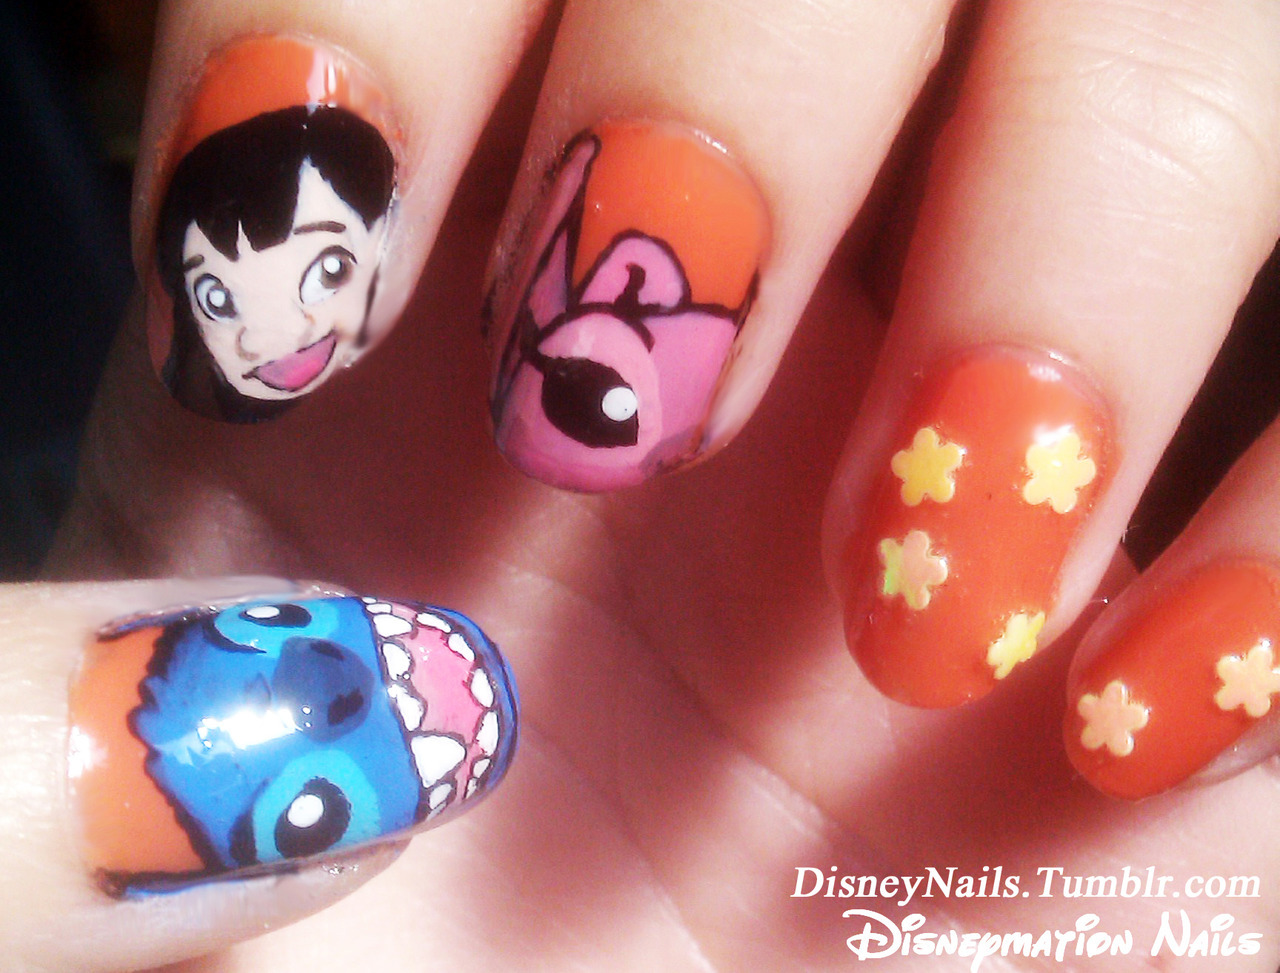 Disney's Lilo and Stitch Nails - Made by Lauren Denise Salinas Acrylic self hand painted nails, natural nails used. A request from my cousin Alet!  DISNEYMATION NAILS